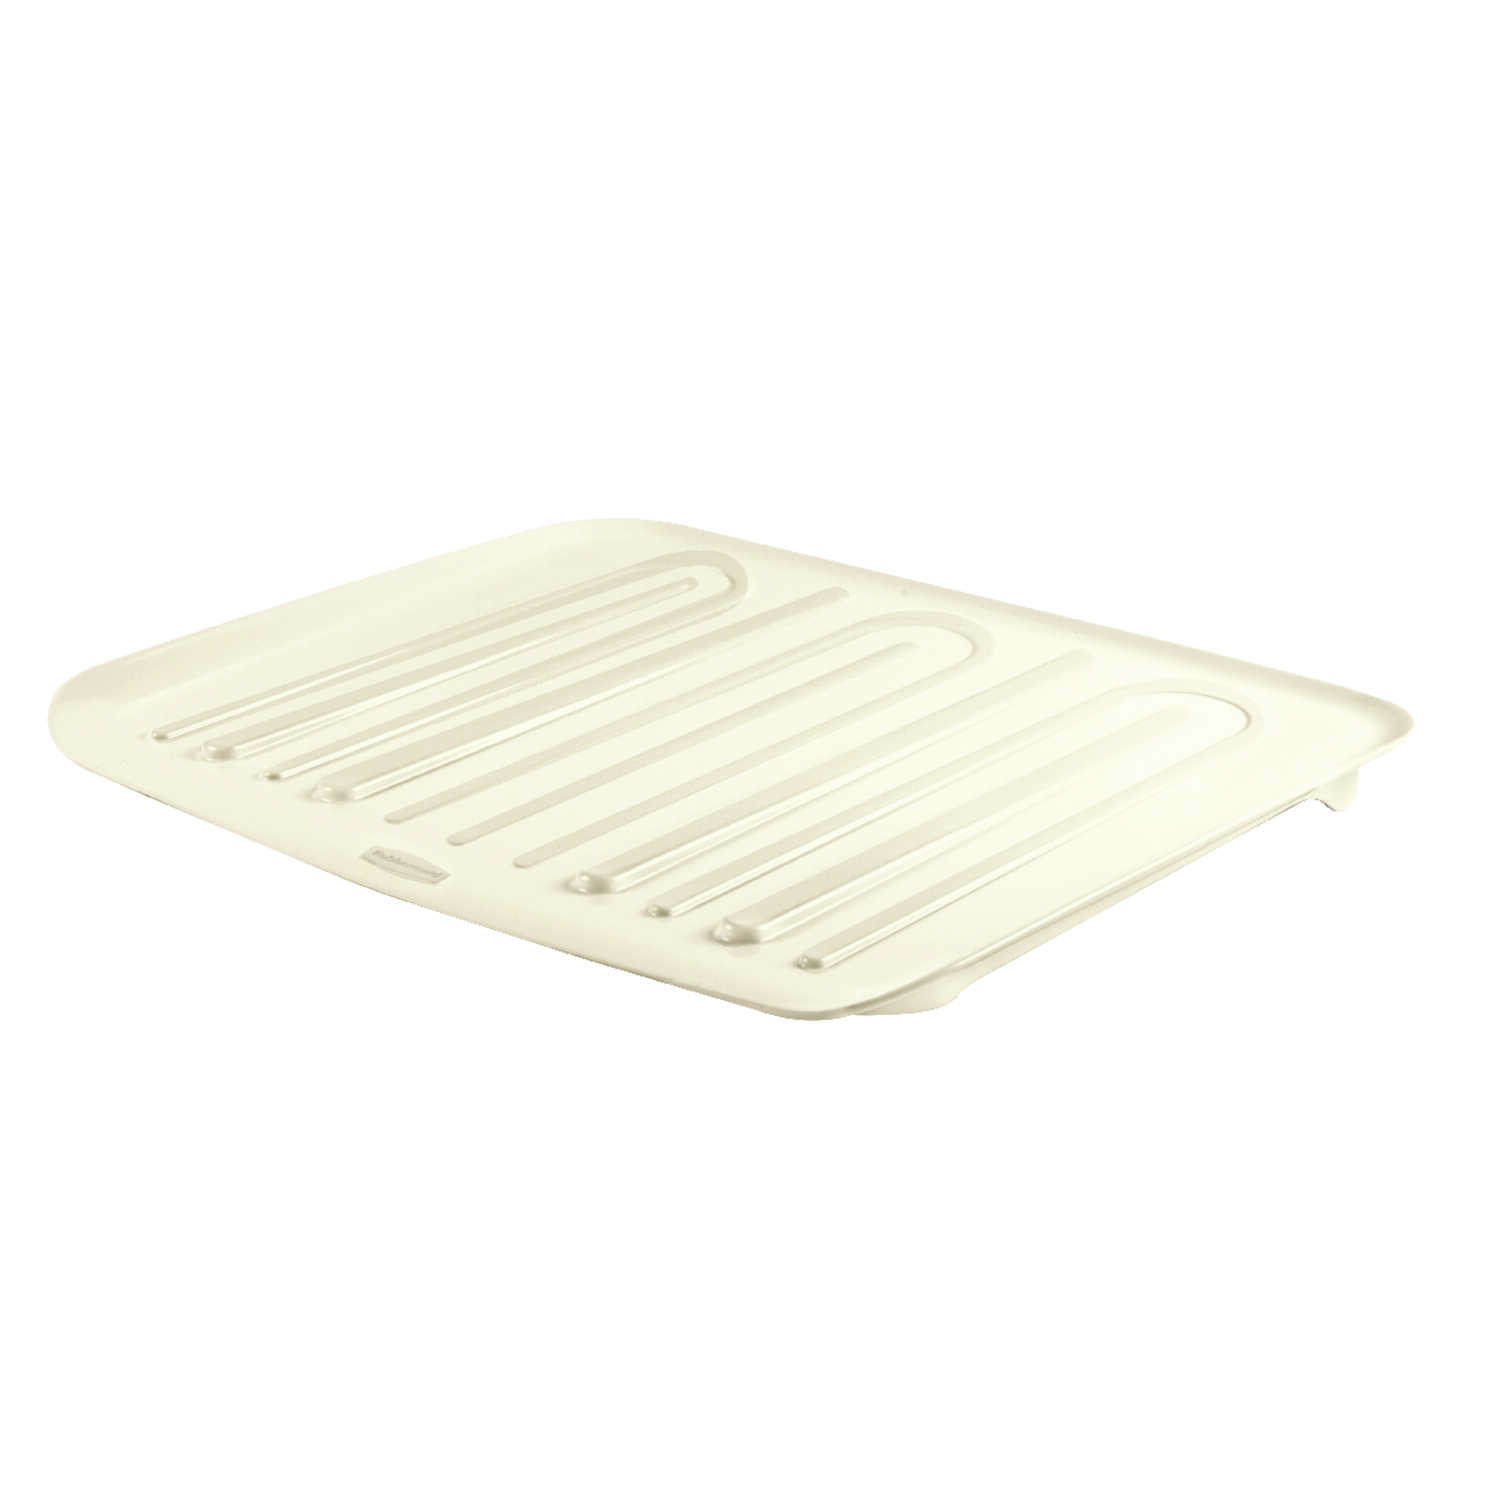 Rubbermaid  1.3 in. H x 18 in. W x 14.7 in. L Plastic  Dish Drainer  Bisque